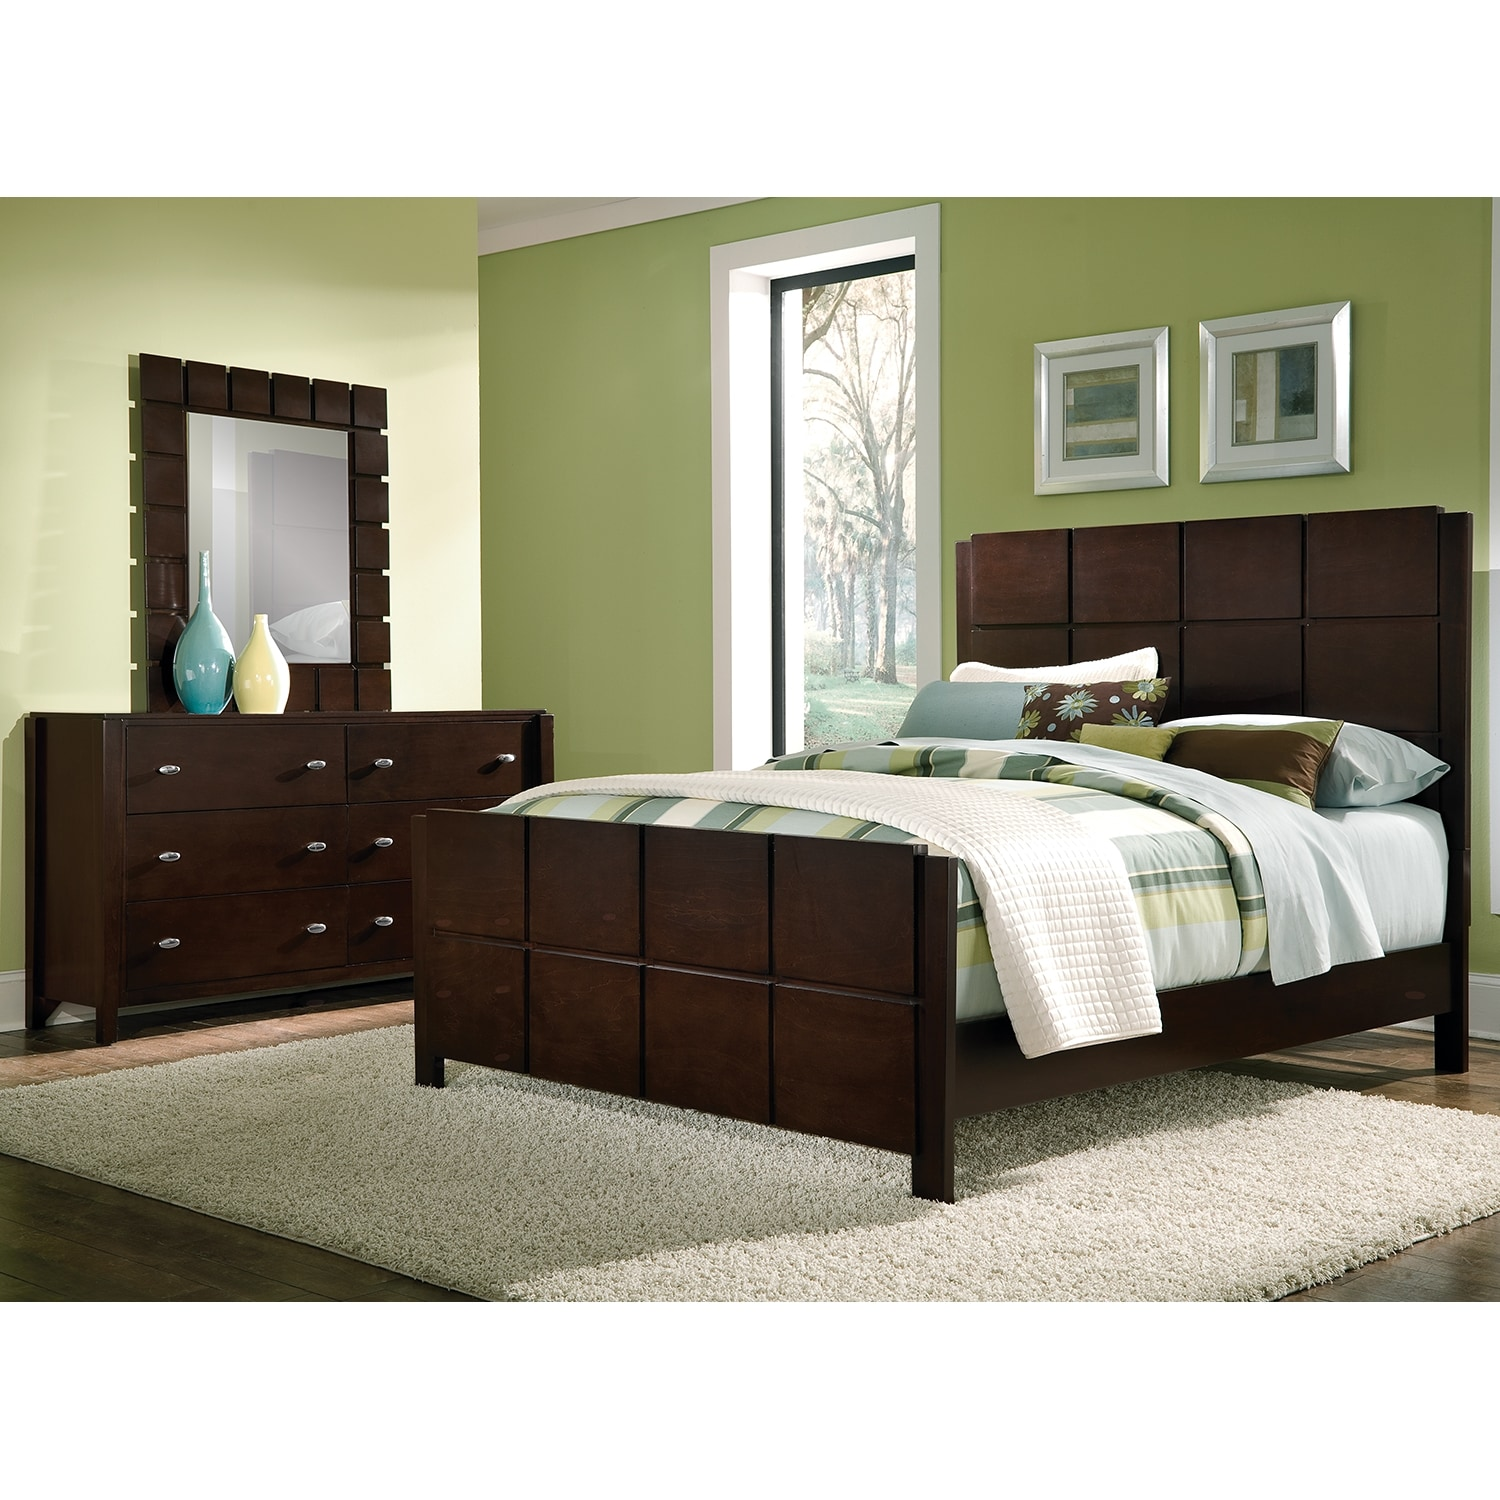 Mosaic 5 piece king bedroom set dark brown american for Bedroom furniture beds